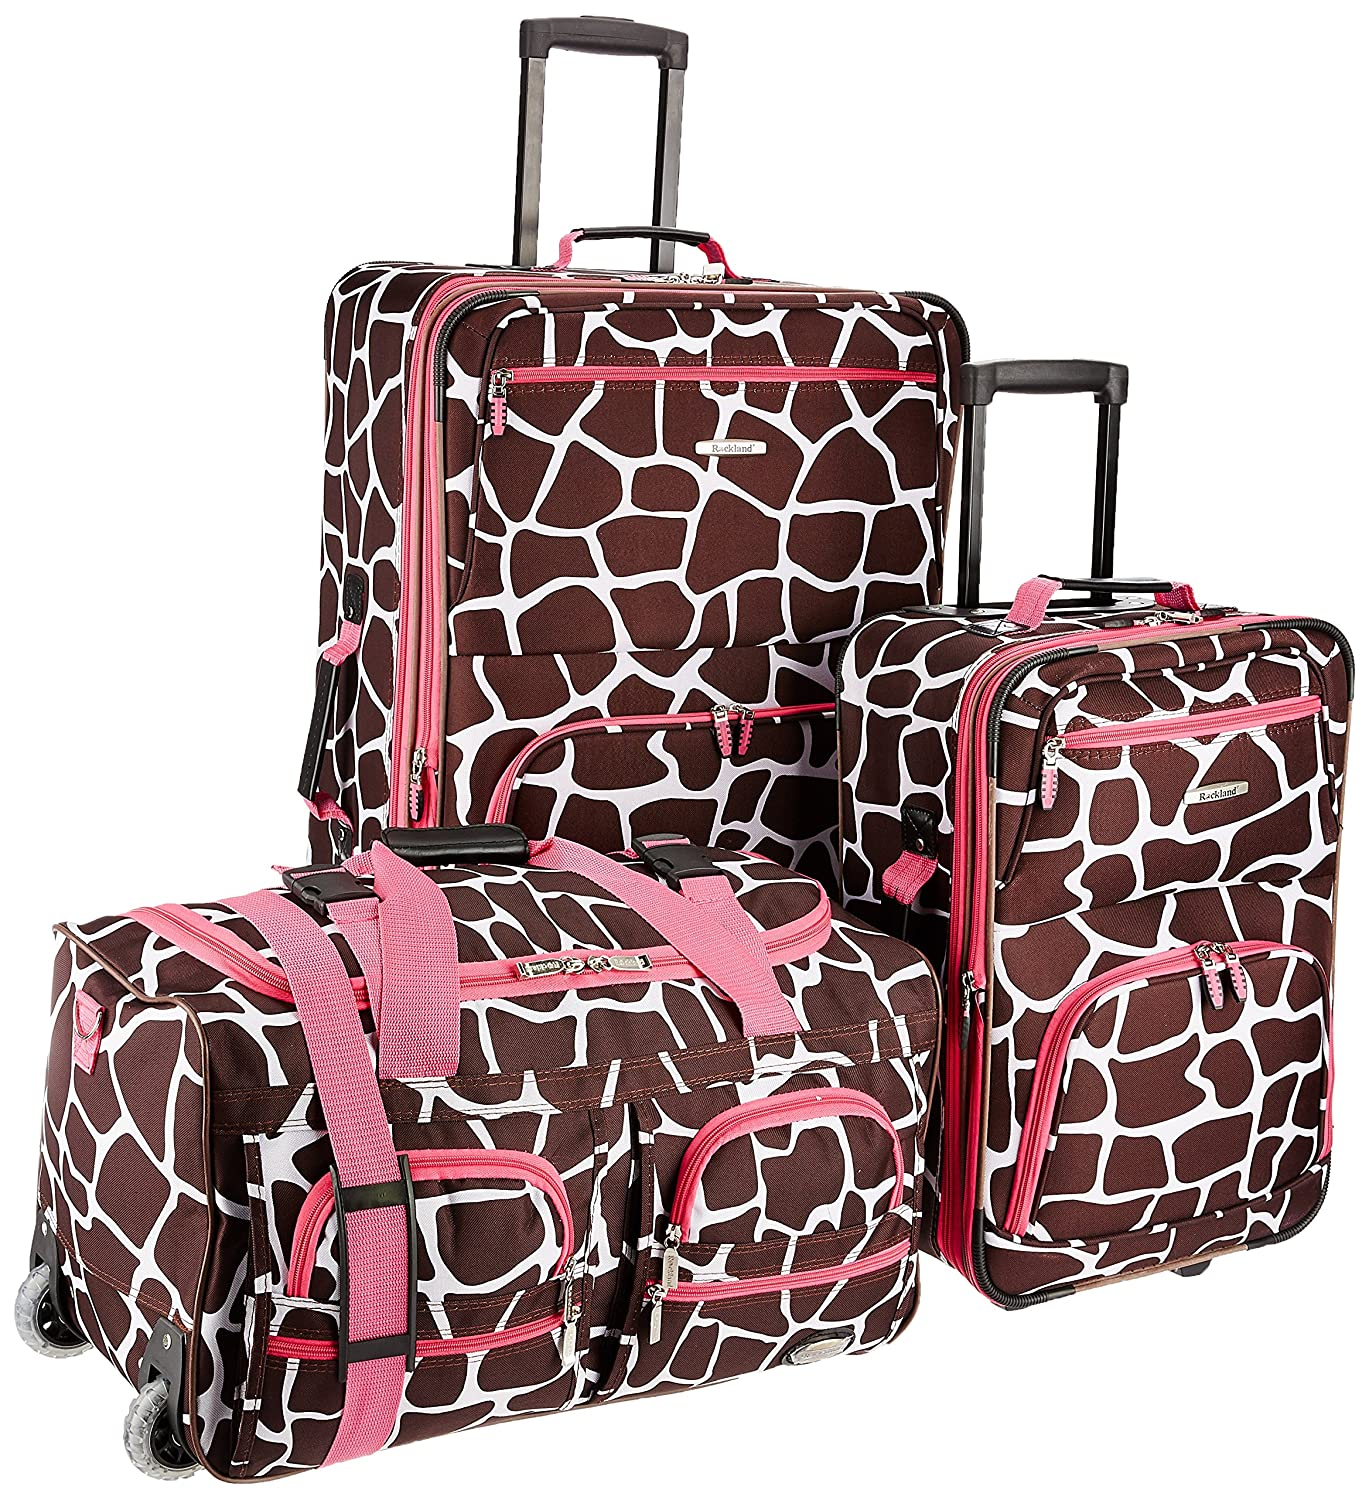 Rockland 3 Piece Luggage Set, Pink Leopard, One Size Fox Luggage F165-PINKLEOPARD